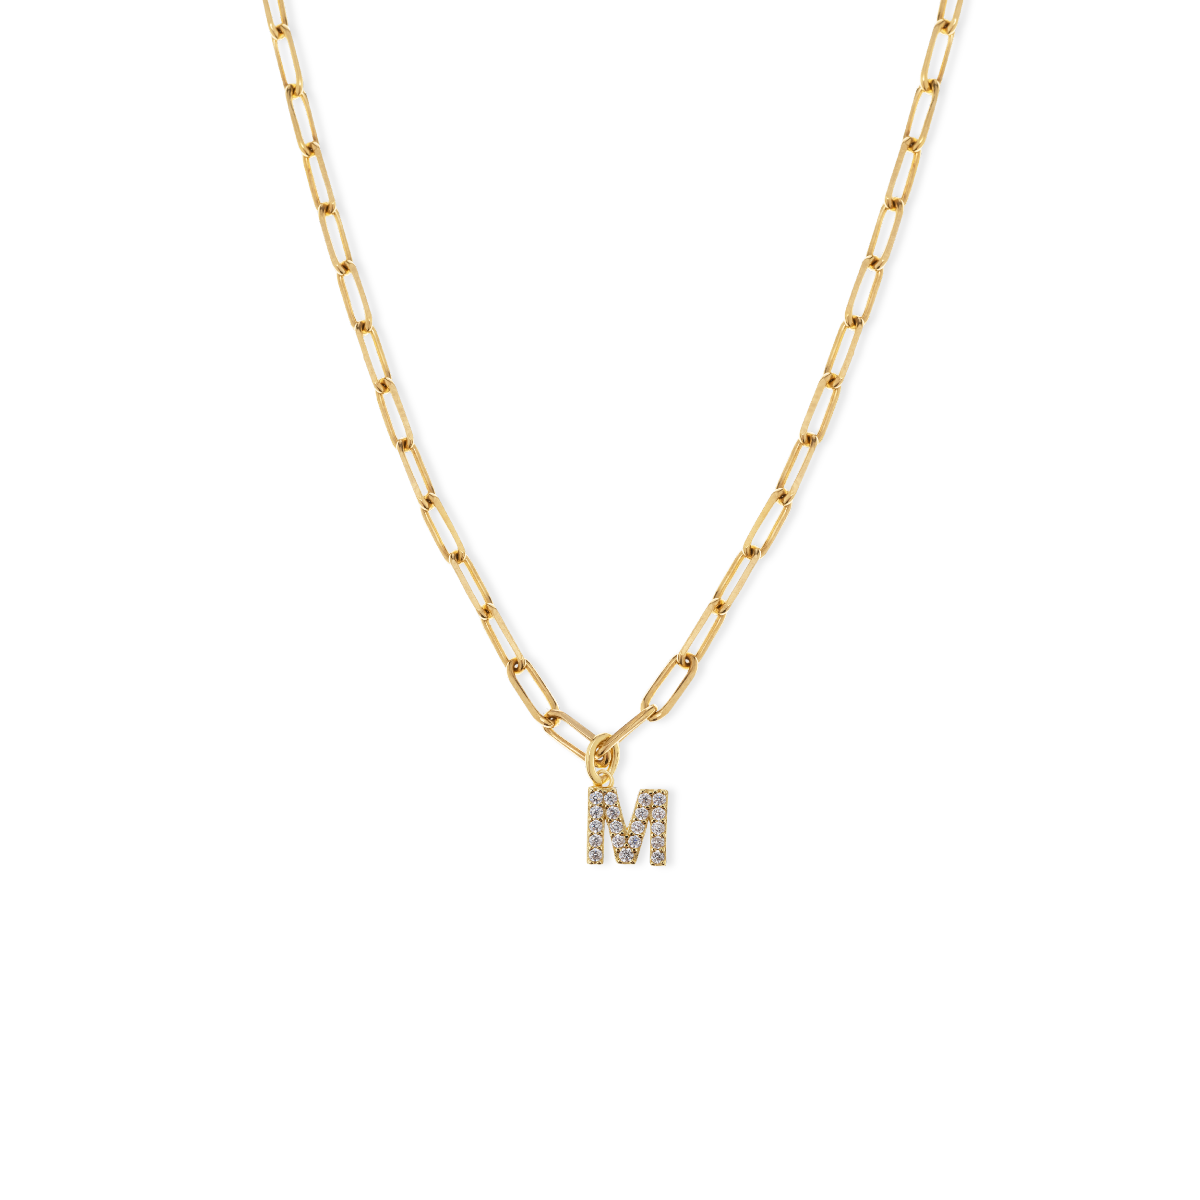 Charlotte Chain Letter Necklace